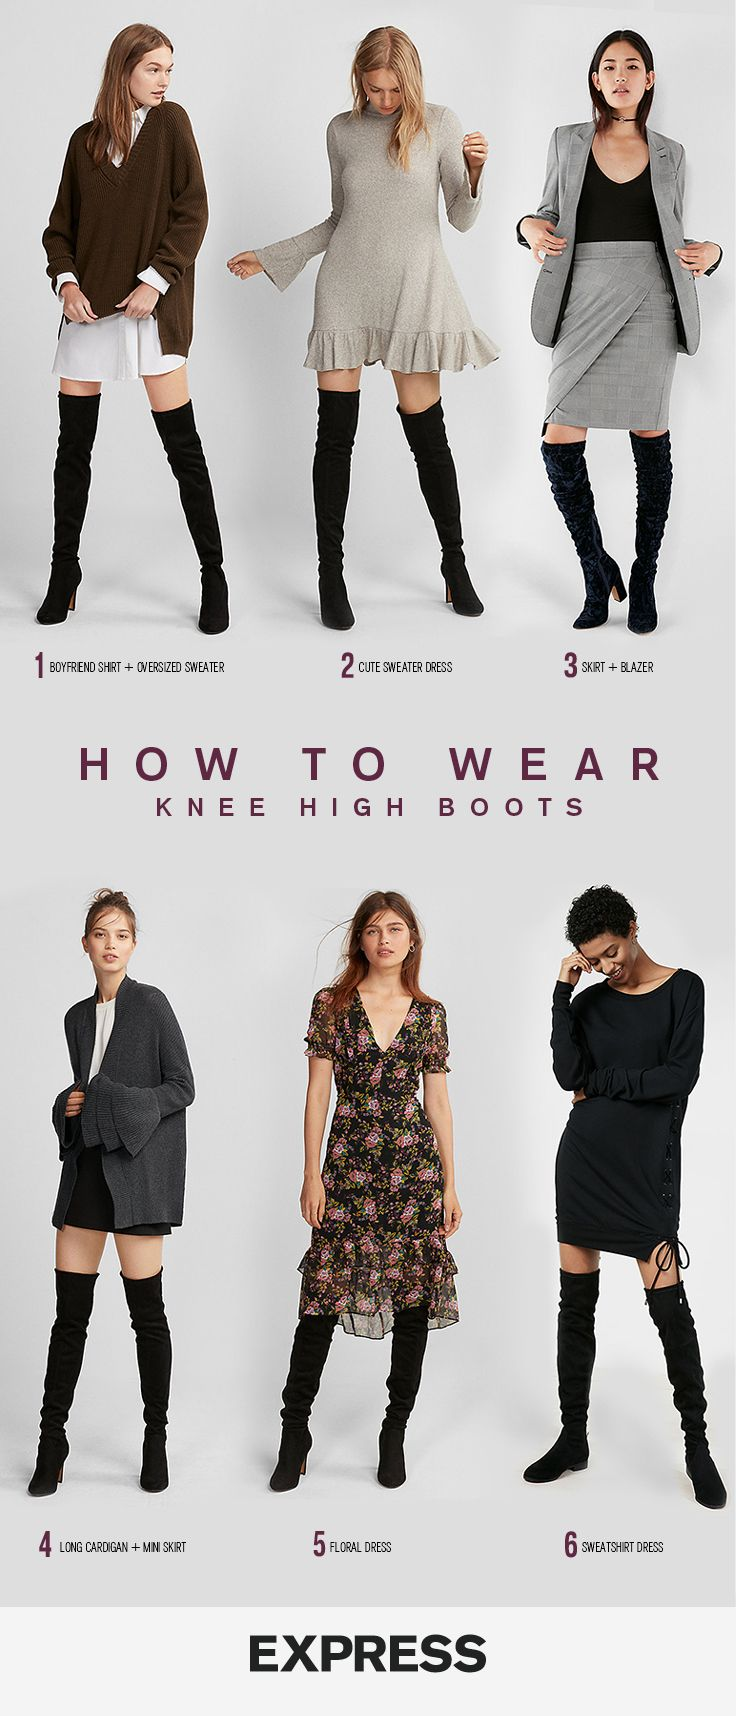 bf5e30131817 6 chic ways to wear over the knee boots this winter. | Fall Fashion ...